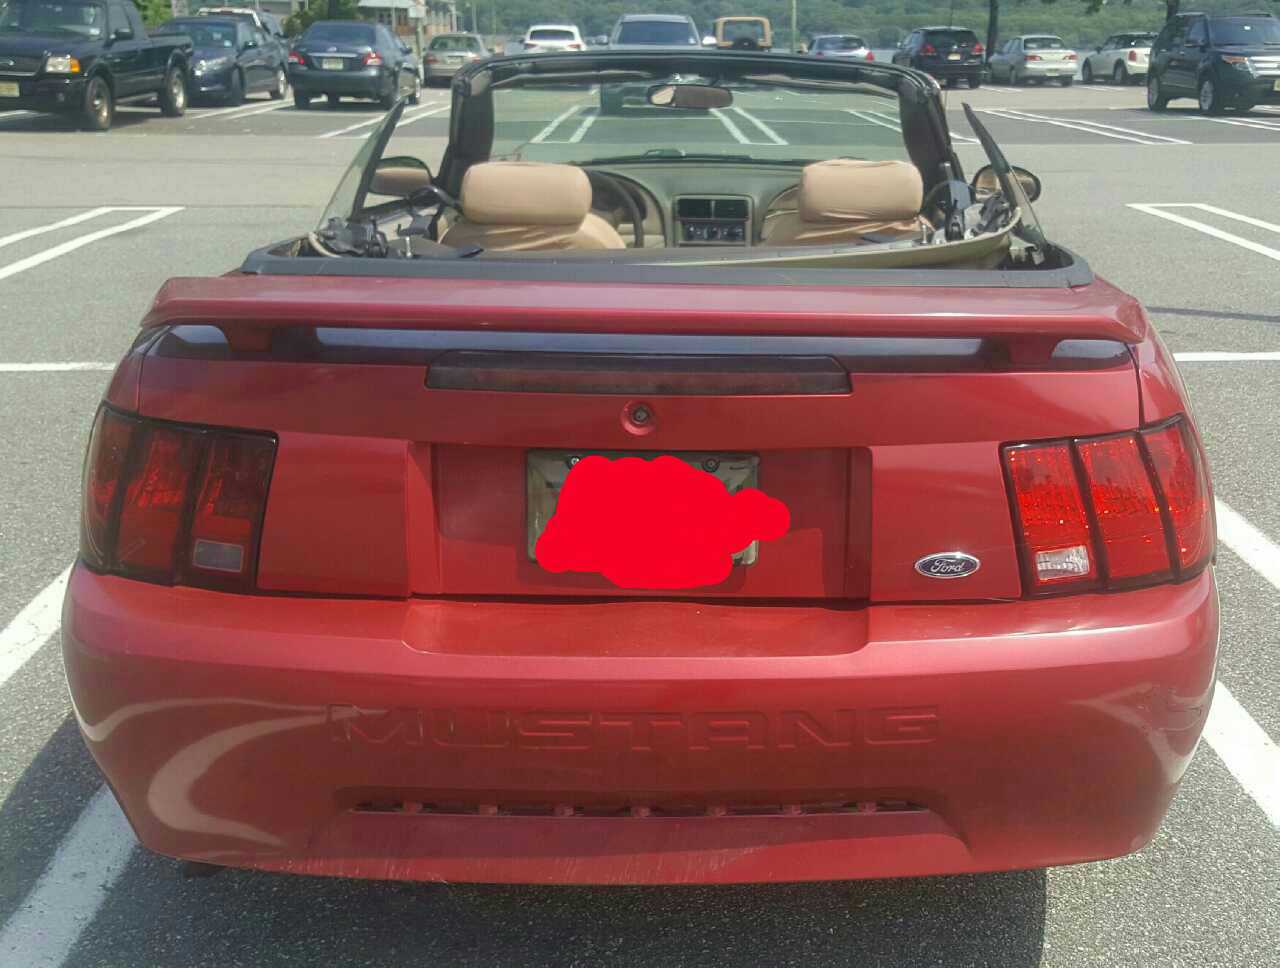 Letgo 2001 ford mustang convertible in bergenline nj for 2001 ford mustang convertible top motor